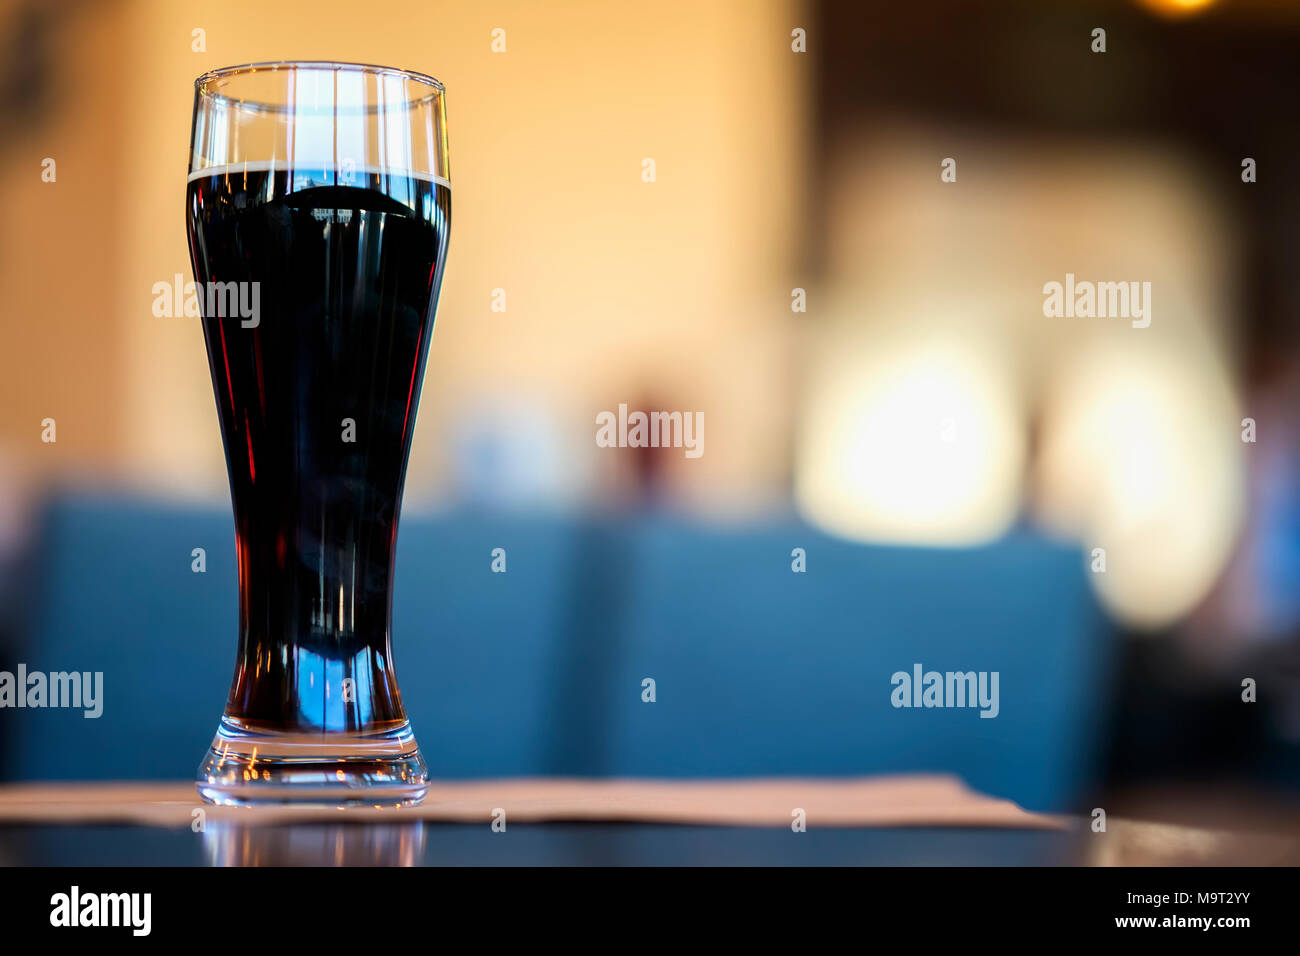 Glass of dark beer in bar or in pub close up. Real scene. Concept of beer culture, Craft brewery, uniqueness of beer grades, meeting of low alcohol beverage lovers - Stock Image